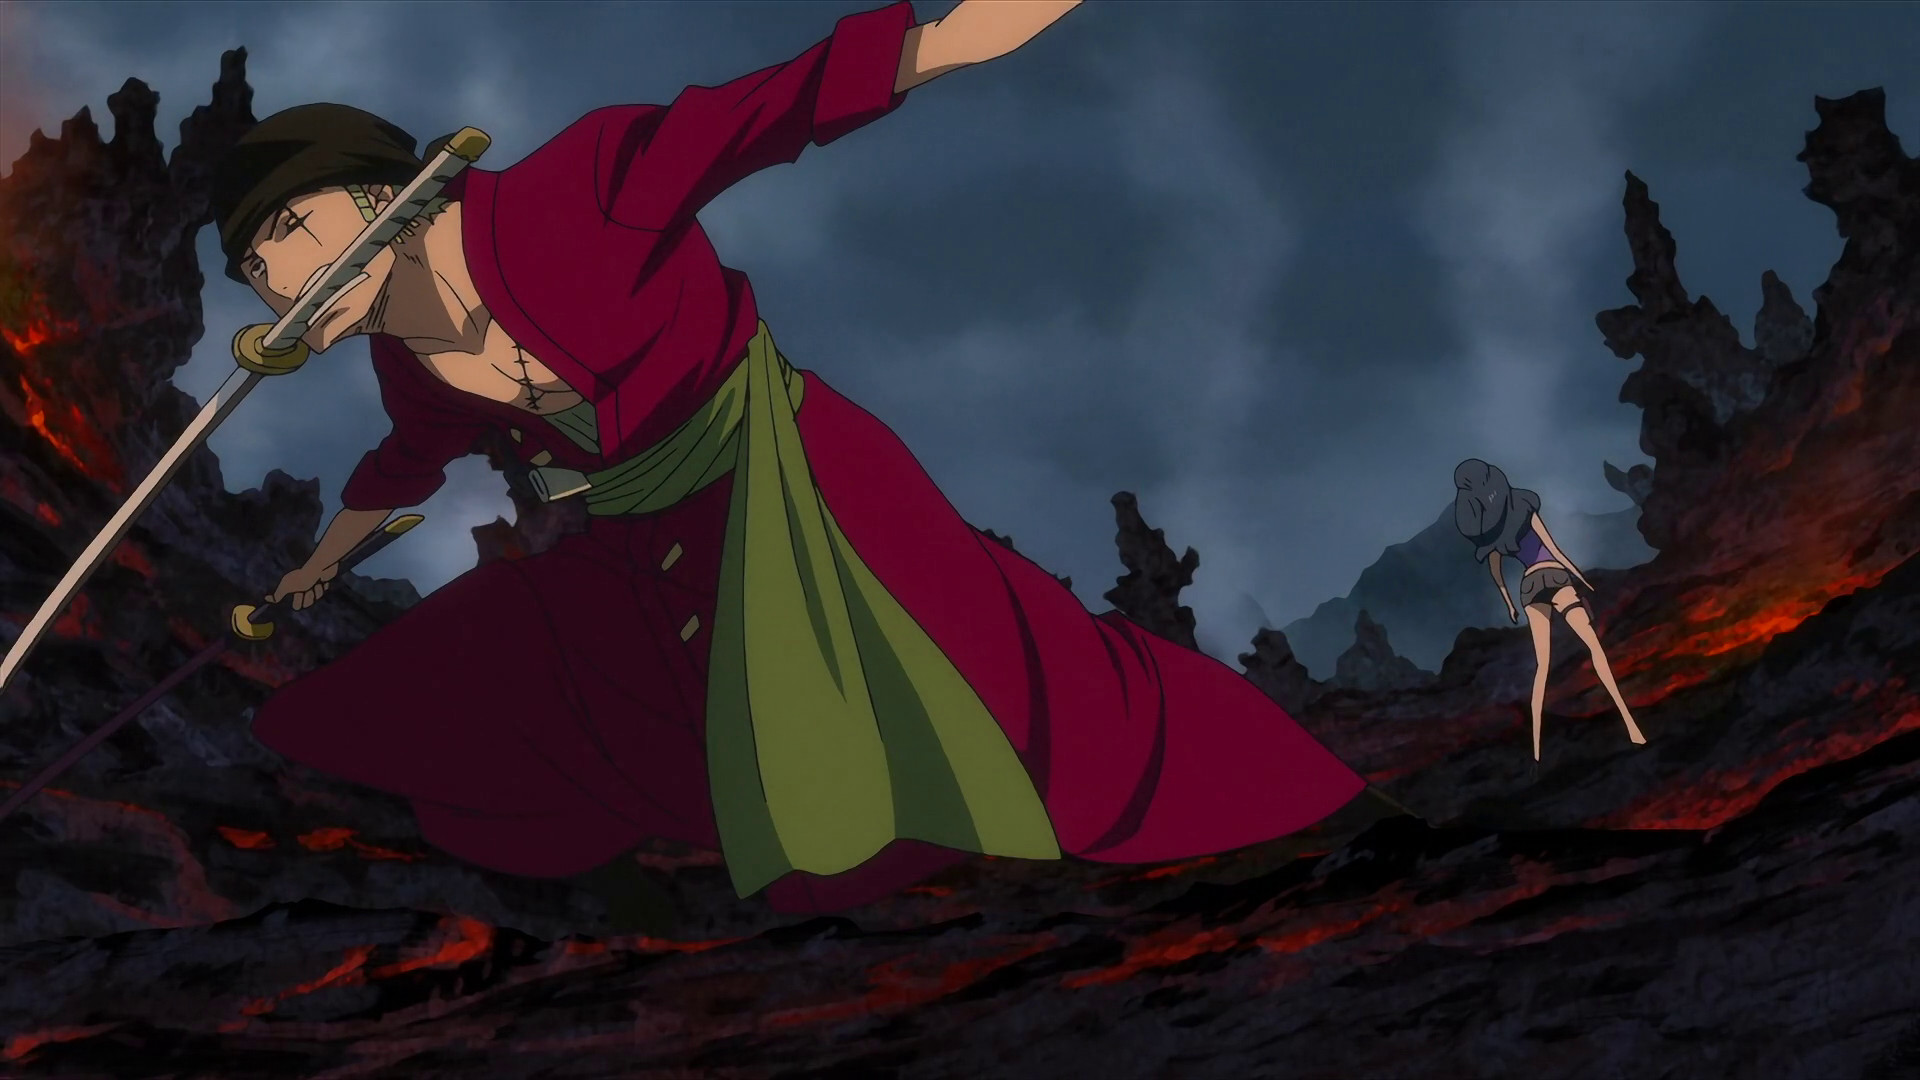 1920x1080 One Piece Zoro Defeats Ain Movie Z New World Wallpaper | One Piece